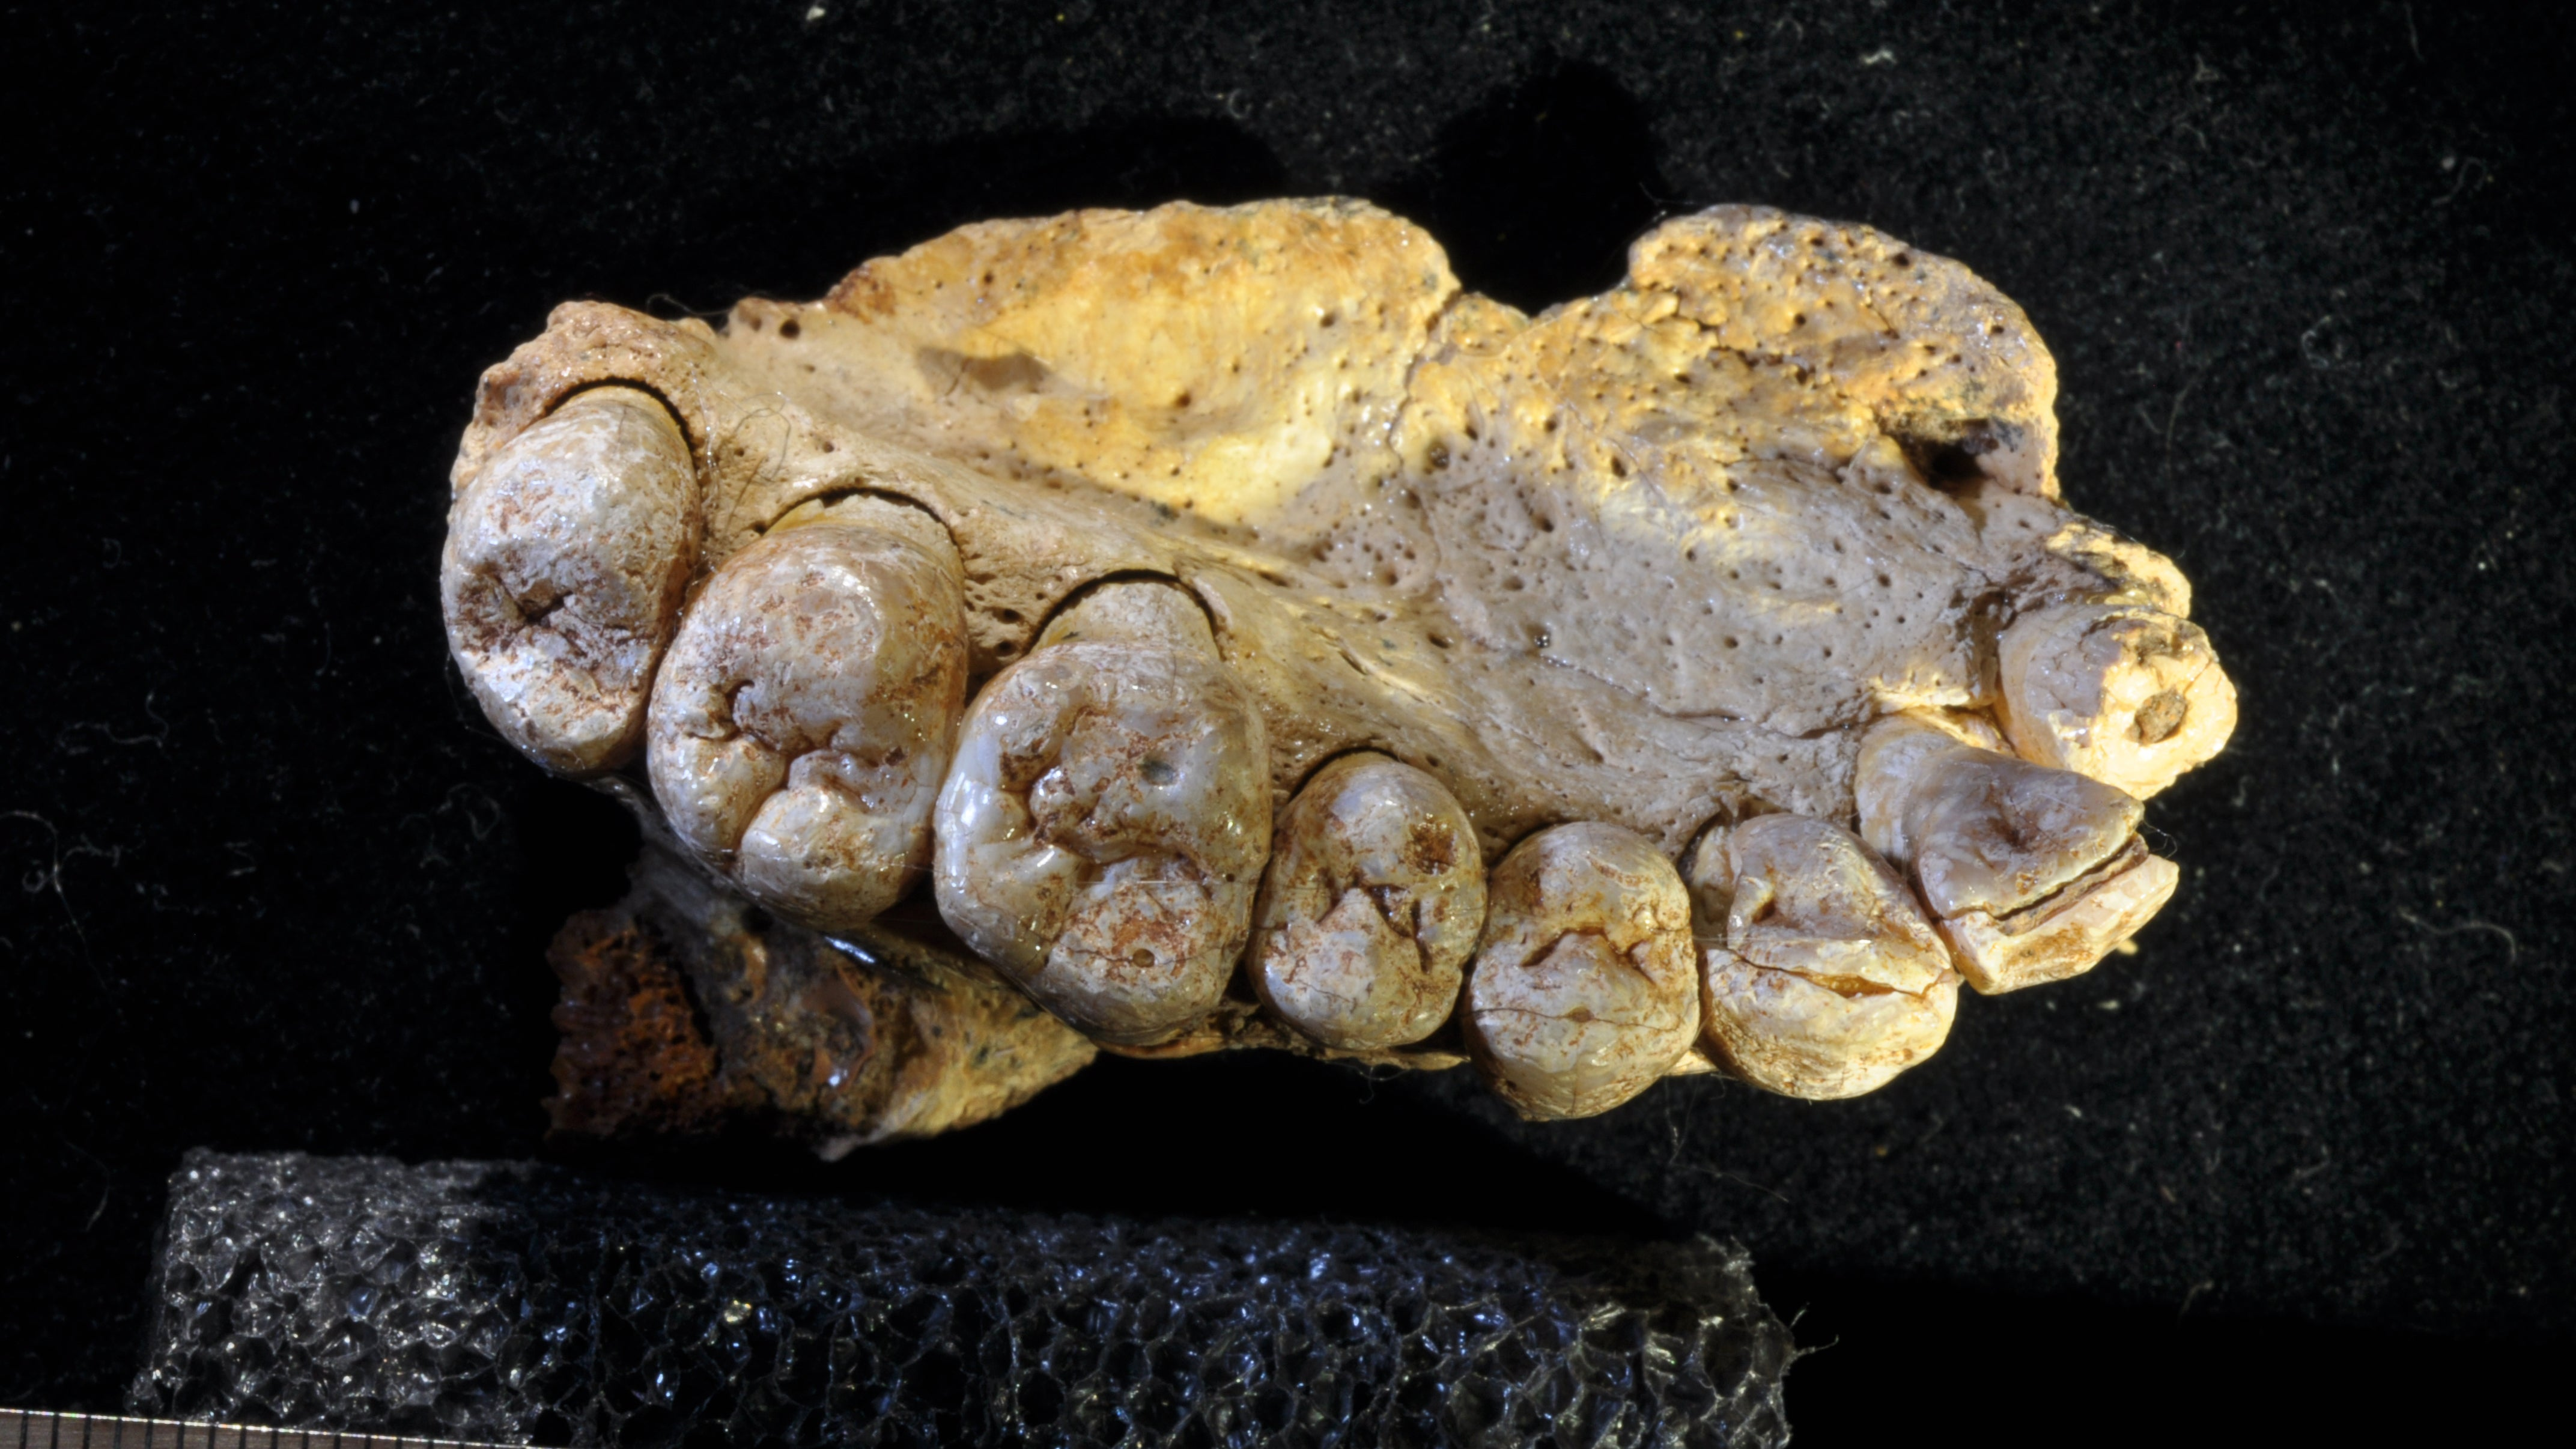 Stunning Fossil Discovery Pushes First Human Migration Out Of Africa Back 50,000 Years